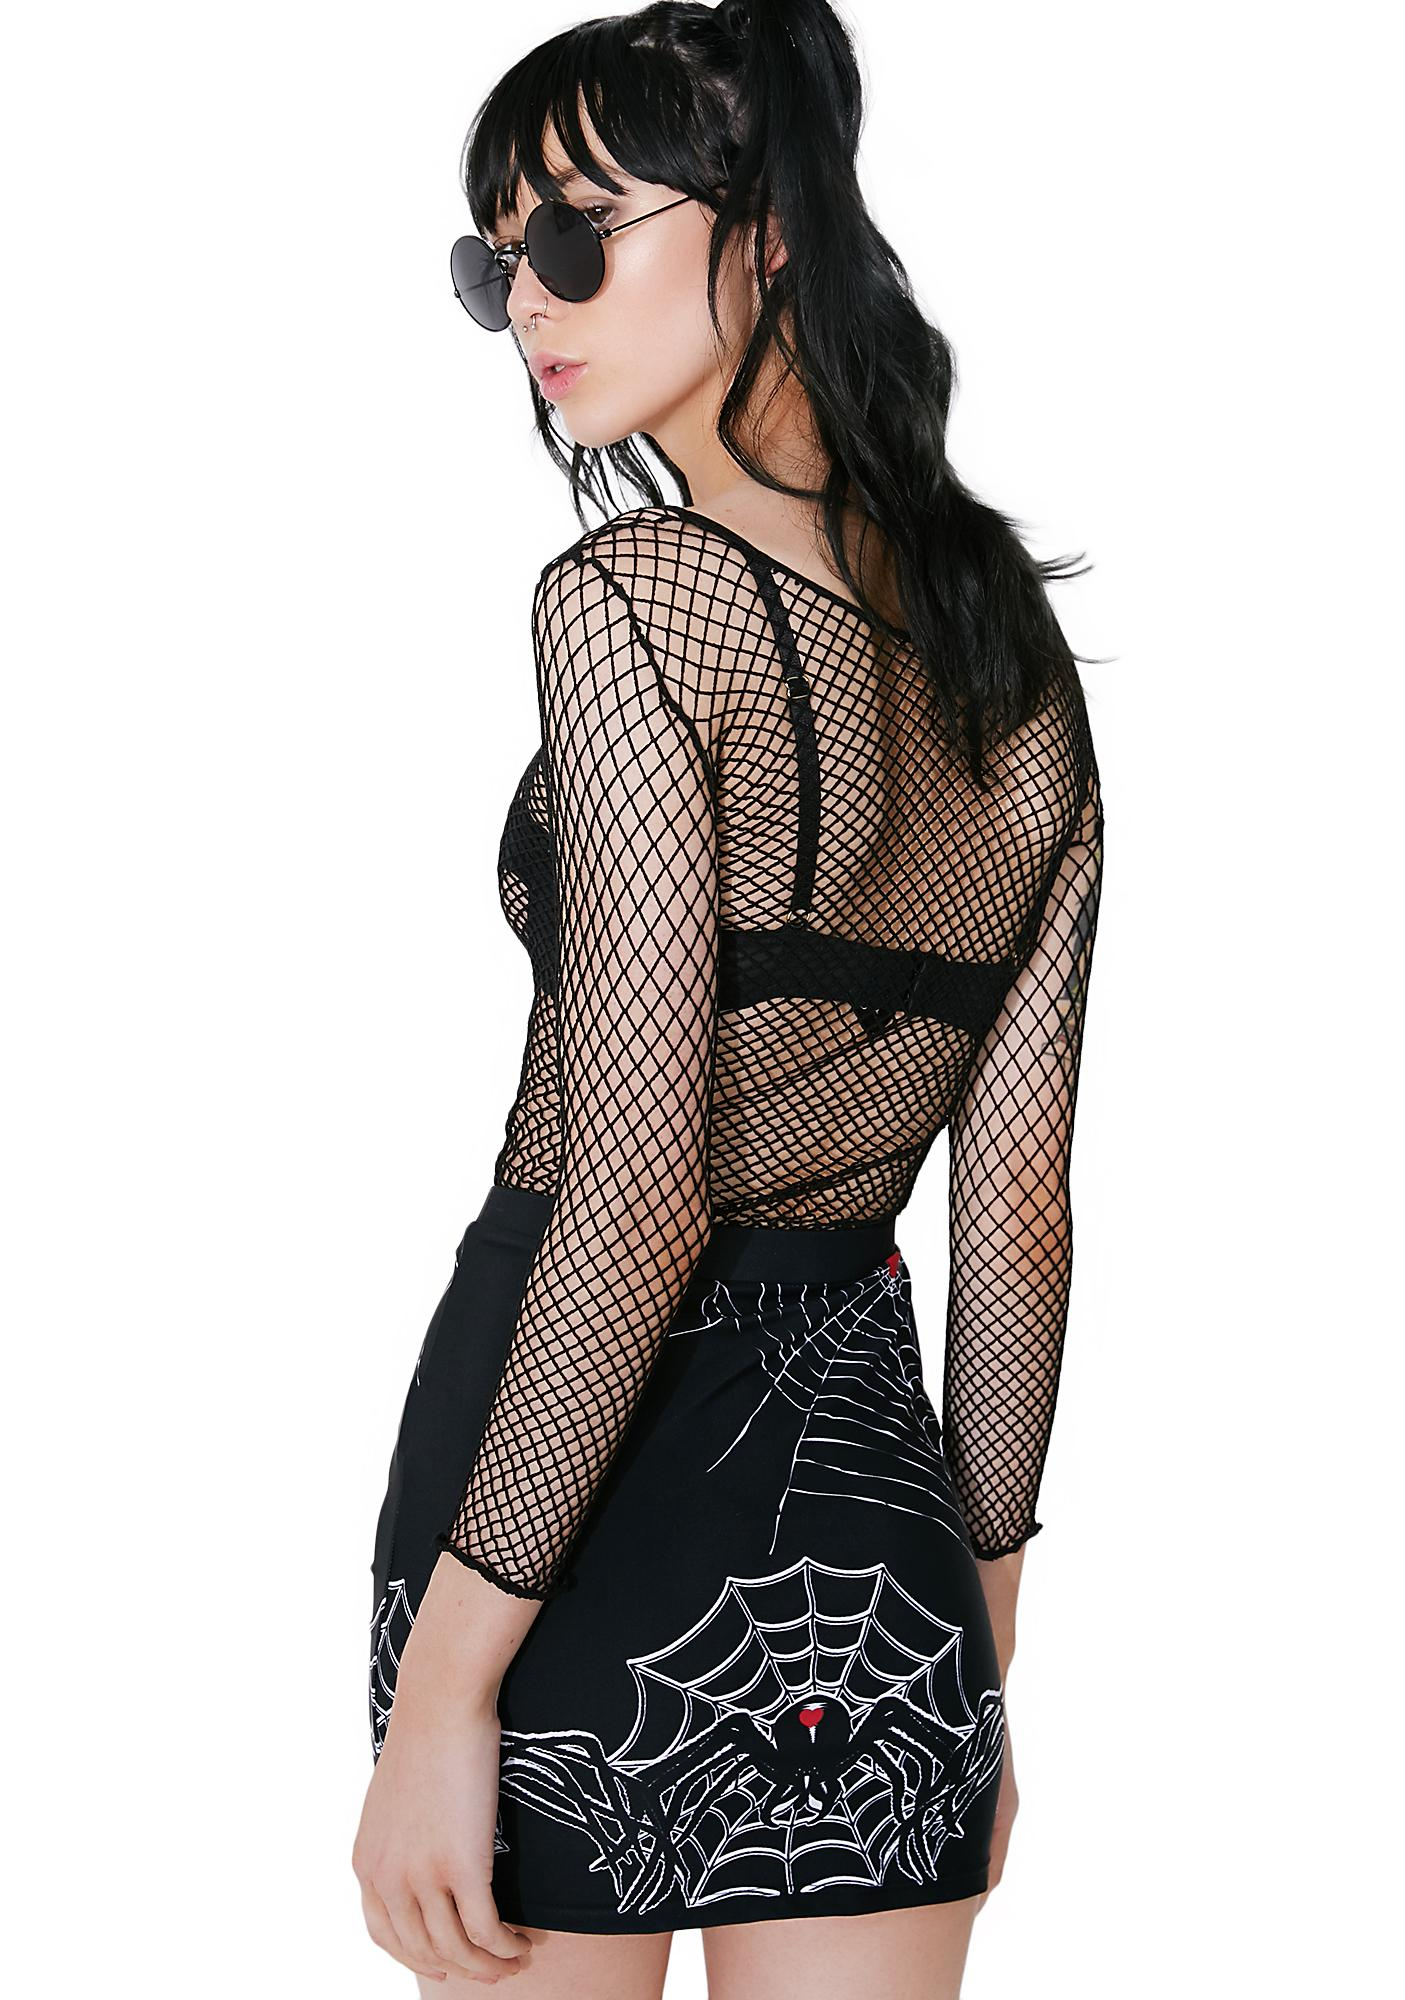 Black Widow Mini Skirt